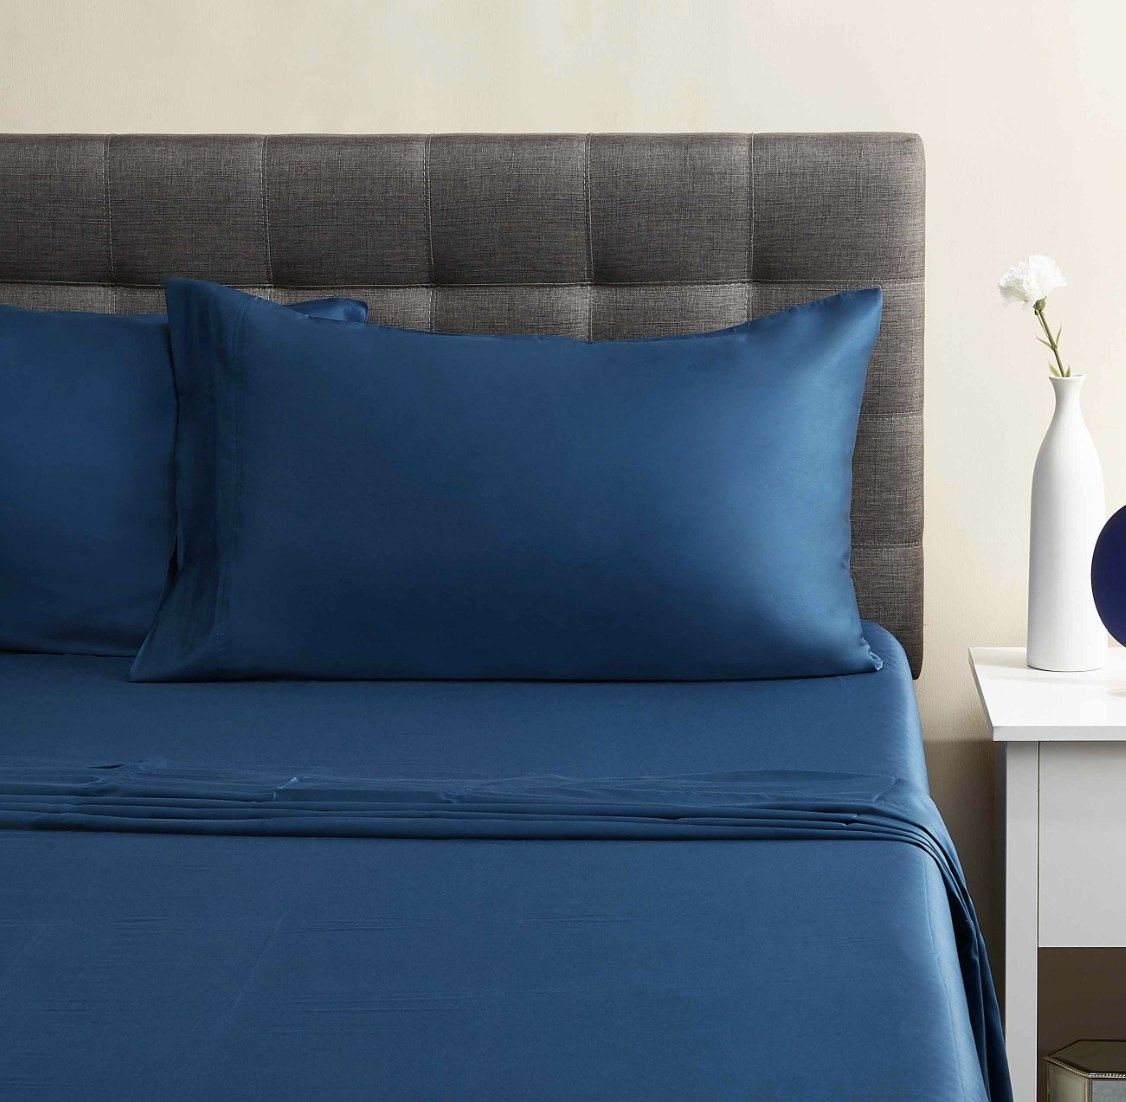 The baltic sea blue sheet set is over a made bed with two pillows